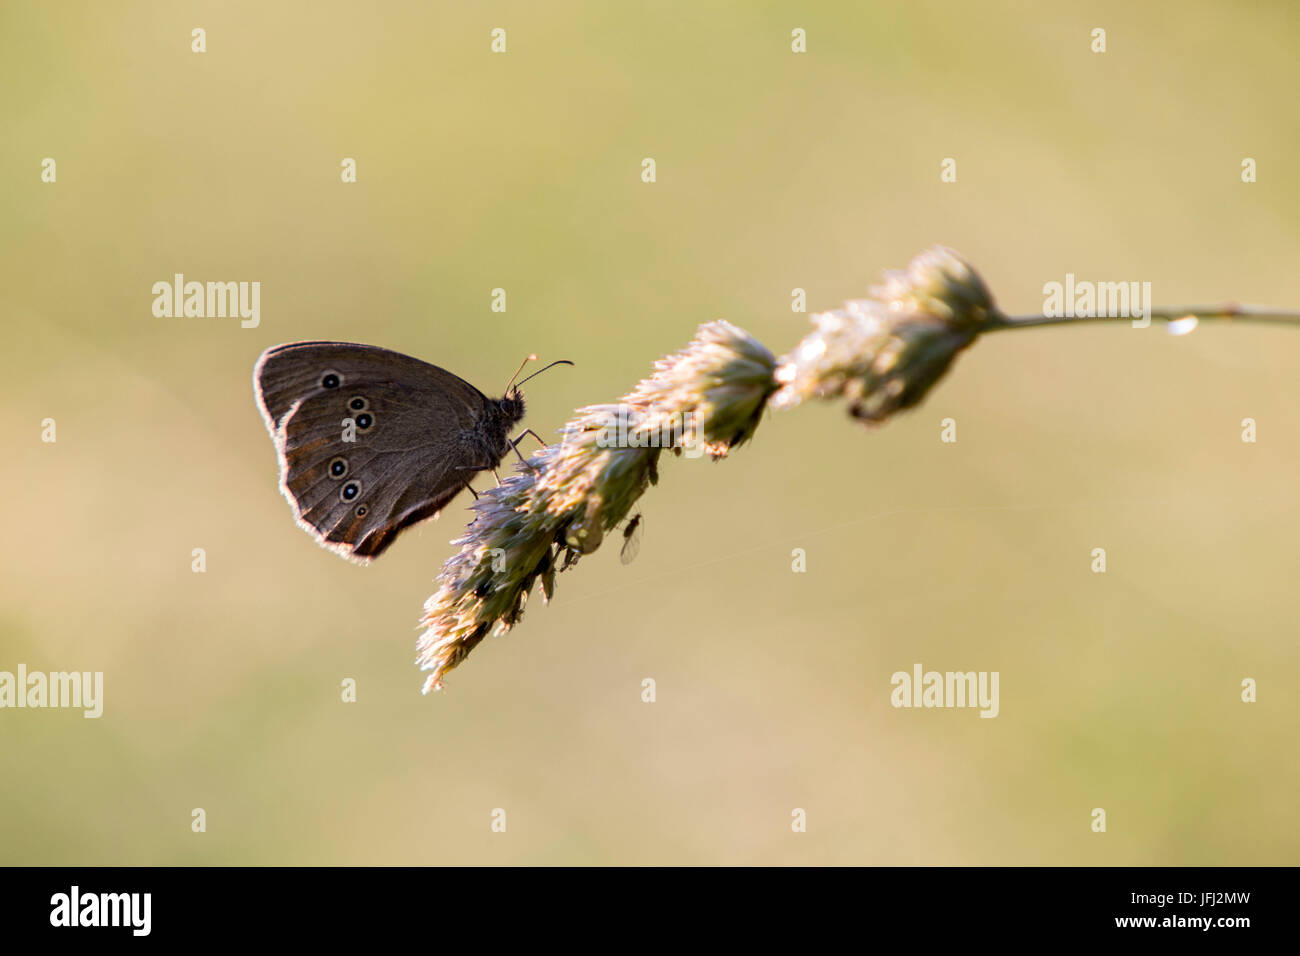 ringlet butterfly on a blade of grass - Stock Image